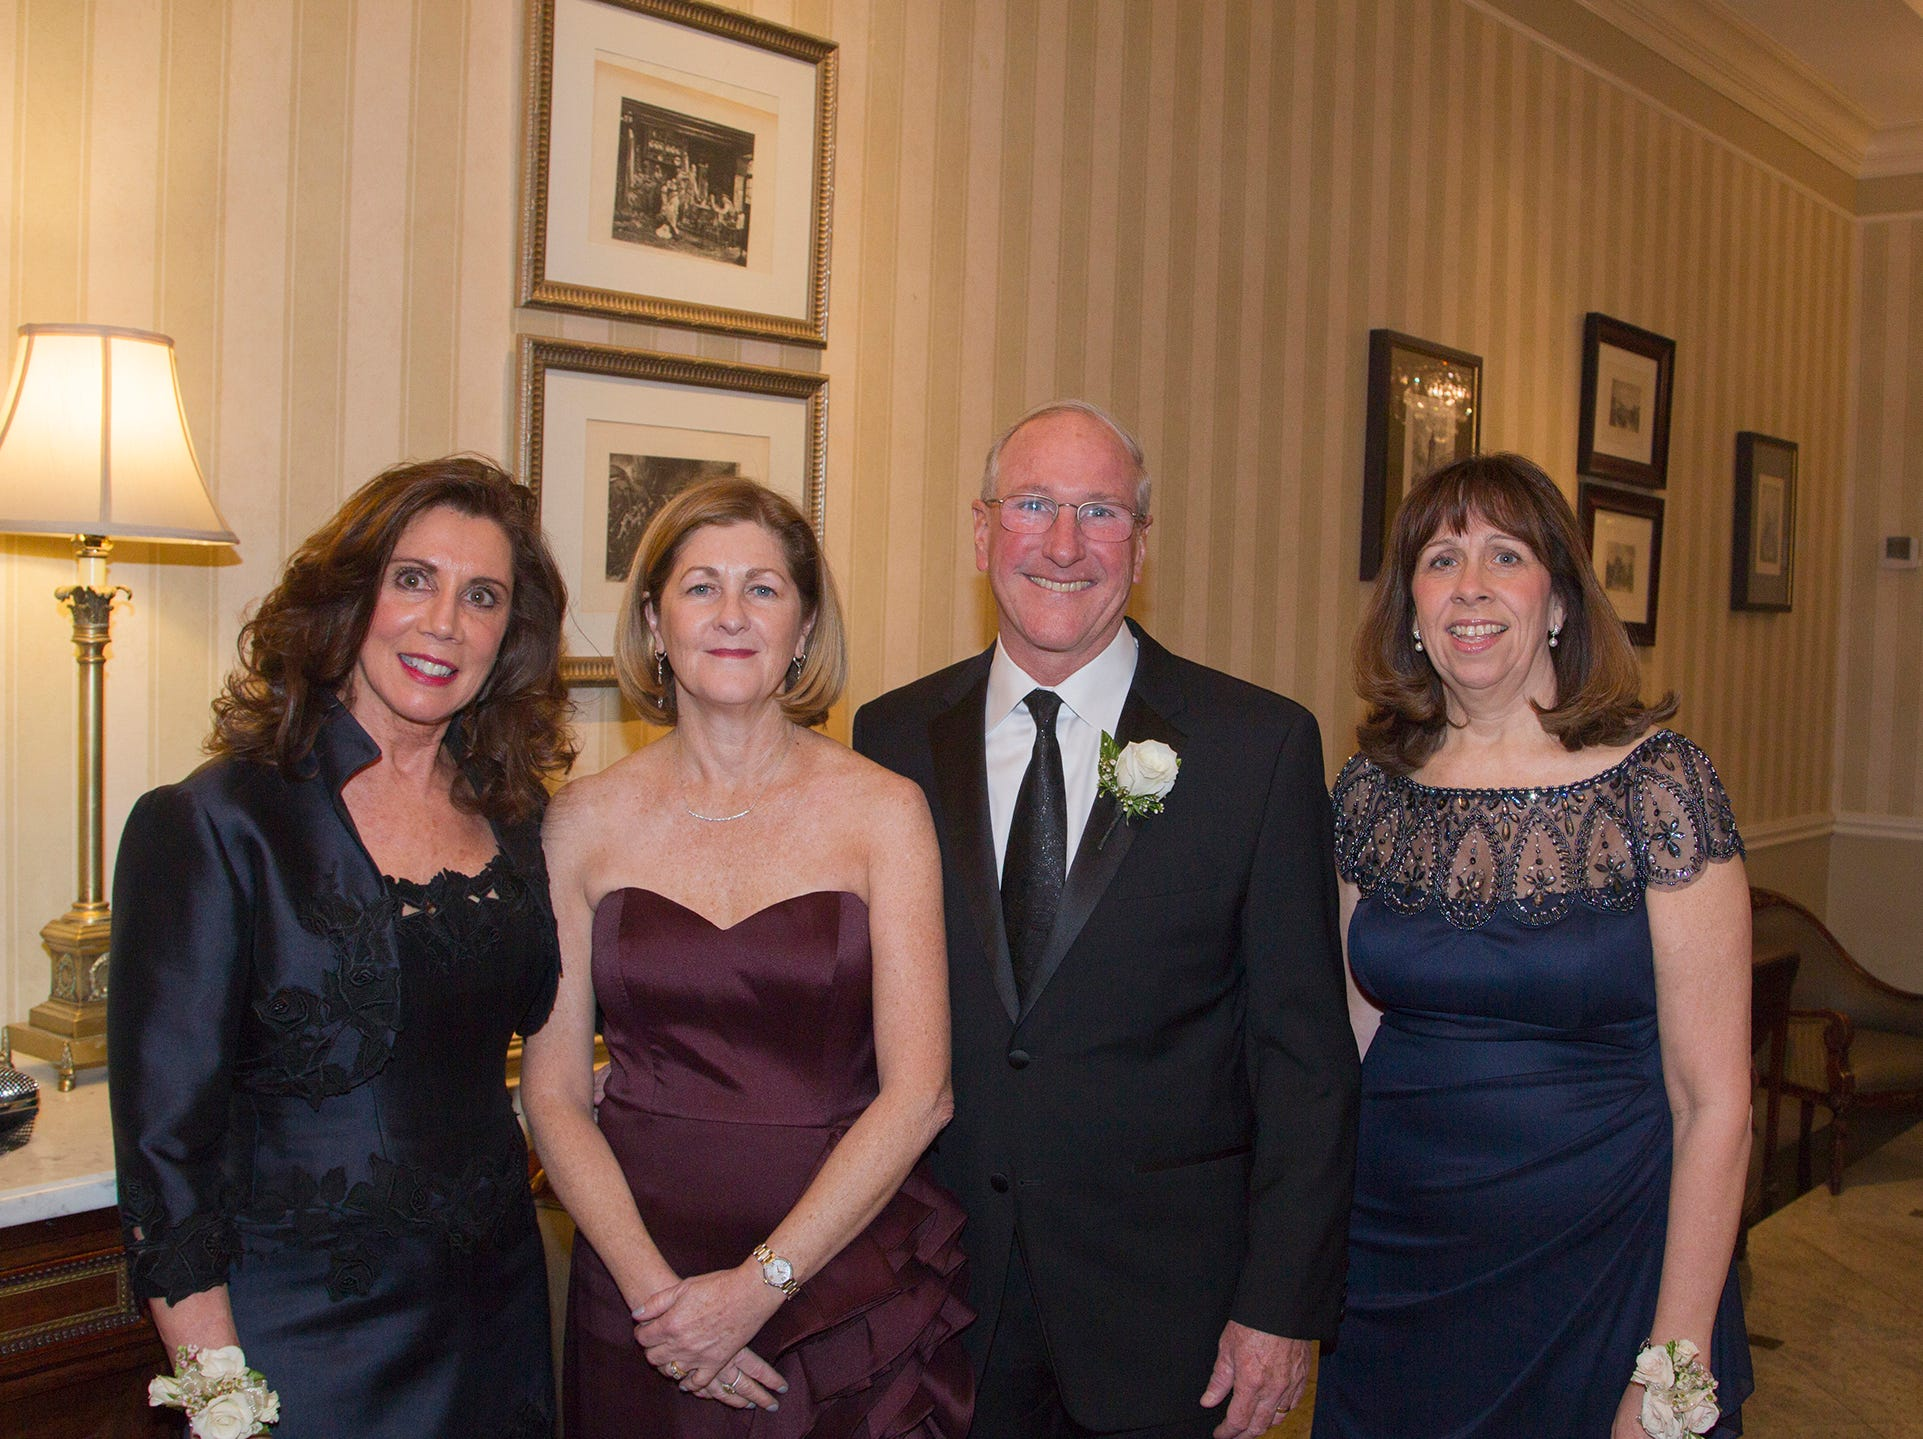 Debra Perry. Jean Colman, Vin Colman, Cathleen Davey. Ramapo College held its 37th Annual Distinguished Citizens Dinner at Rockleigh Country Club. 03/02/2019